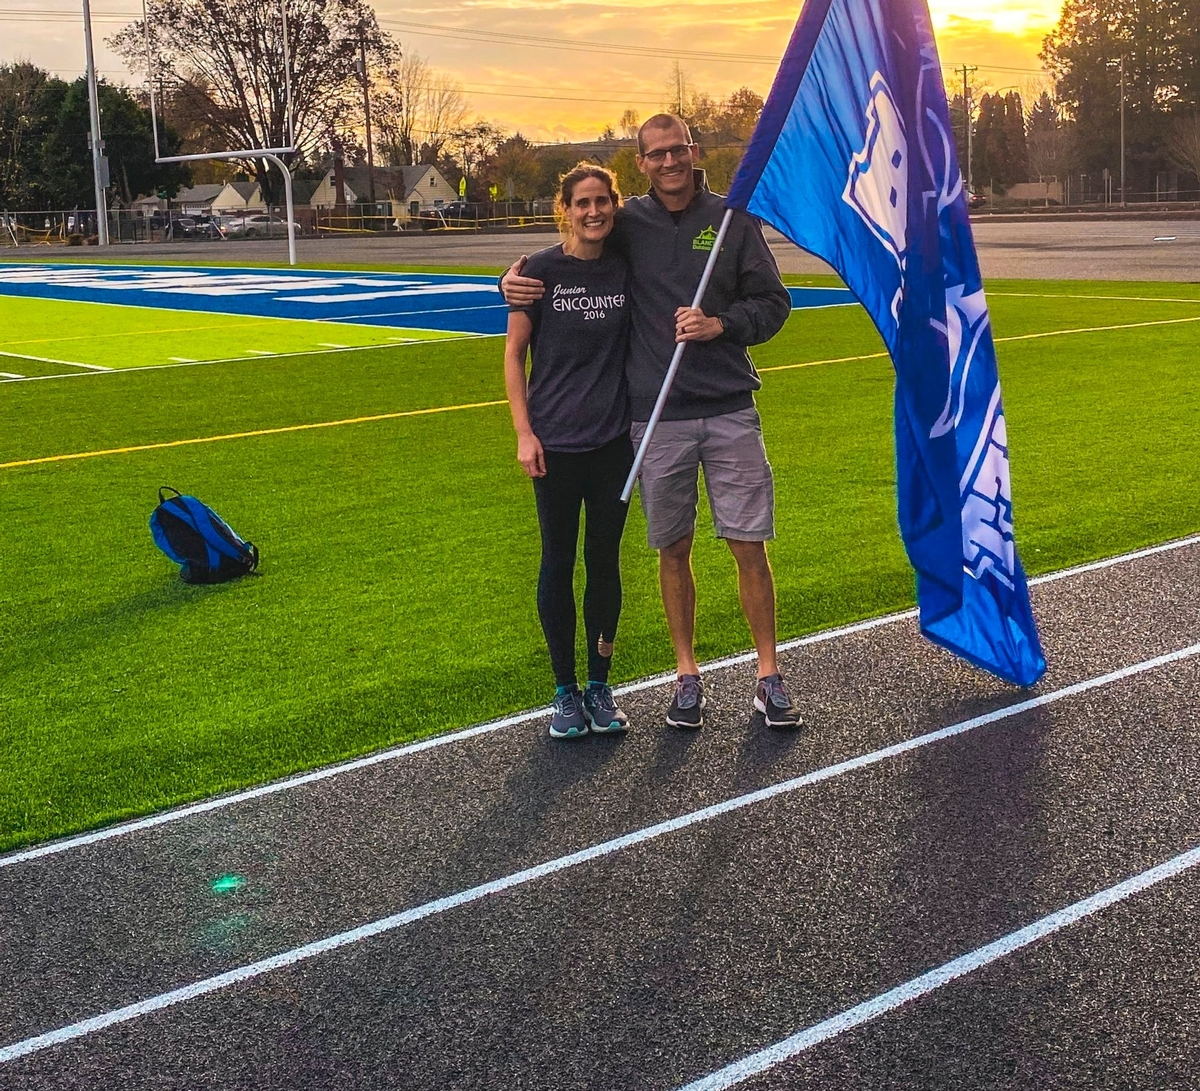 Track Coaches Take First Lap On New Track